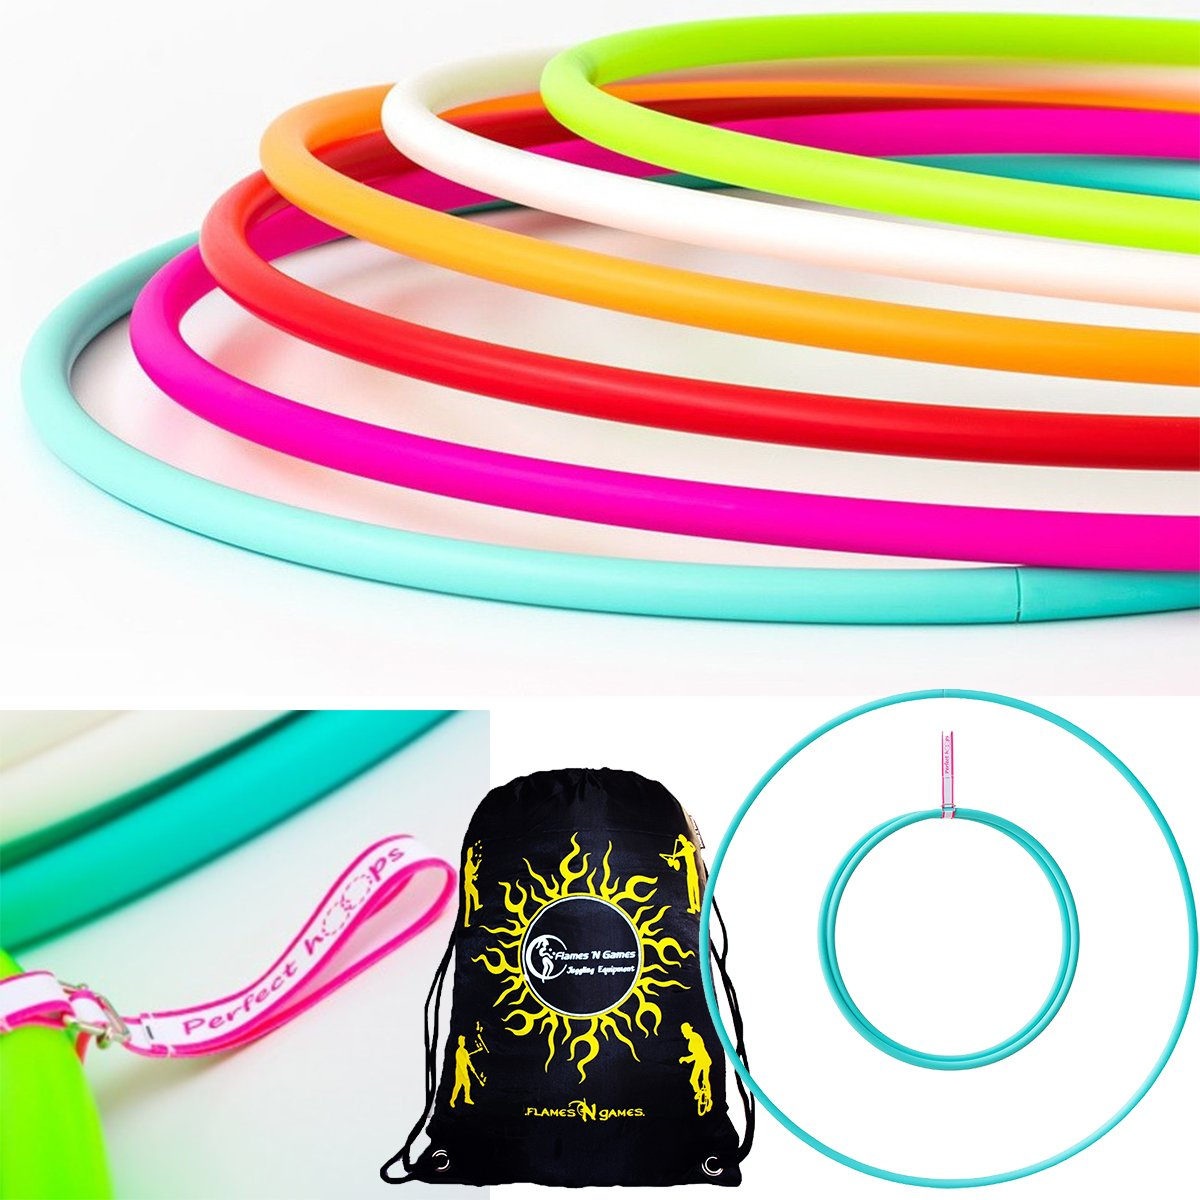 Play PERFECT Naked Hula Hoops + Flames N Games® Travel Bag. Weighted TRAVEL Hula Hoop (100cm/39') Hula Hoops For Exercise, Dance & Fitness! (350g) NO Instructions Needed - Same Day Dispatch! Play / Flames N Games